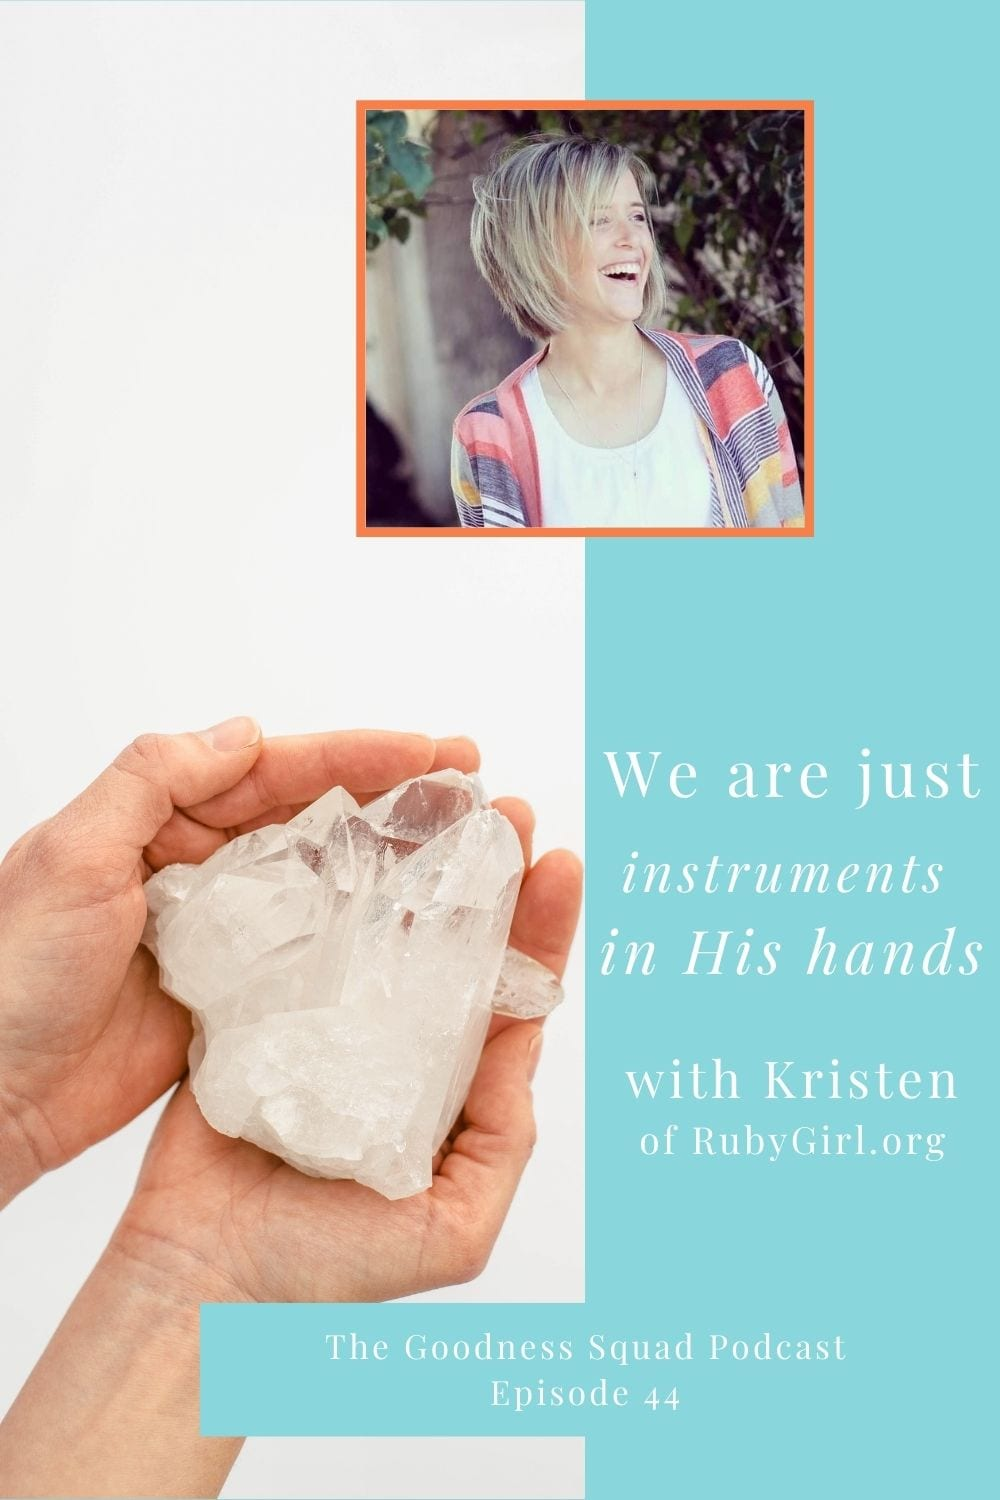 044_We are just instruments with kristen from rubygirl.org